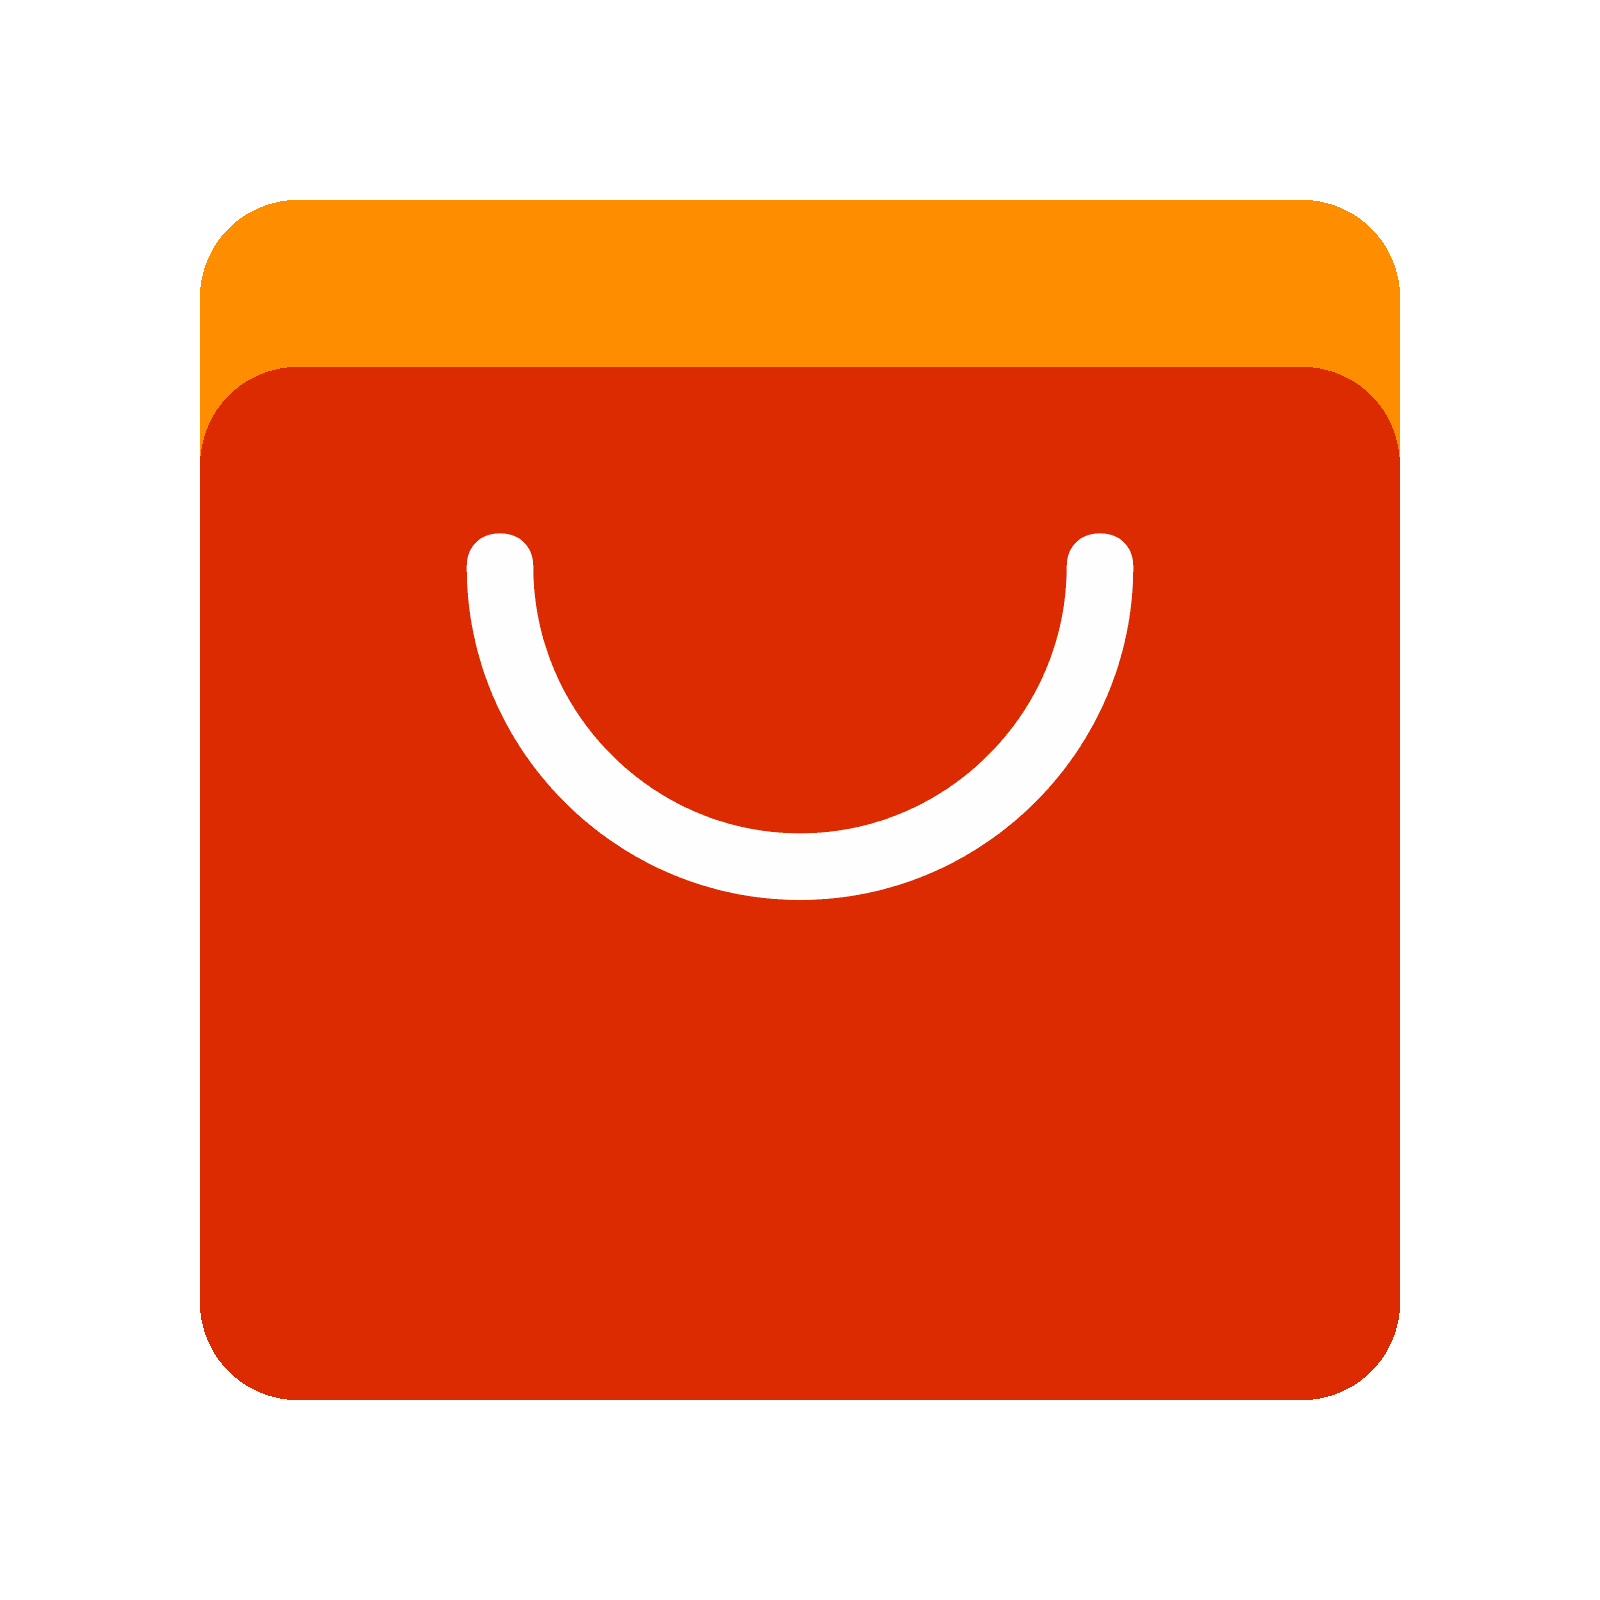 Png express download free. Aliexpress icon